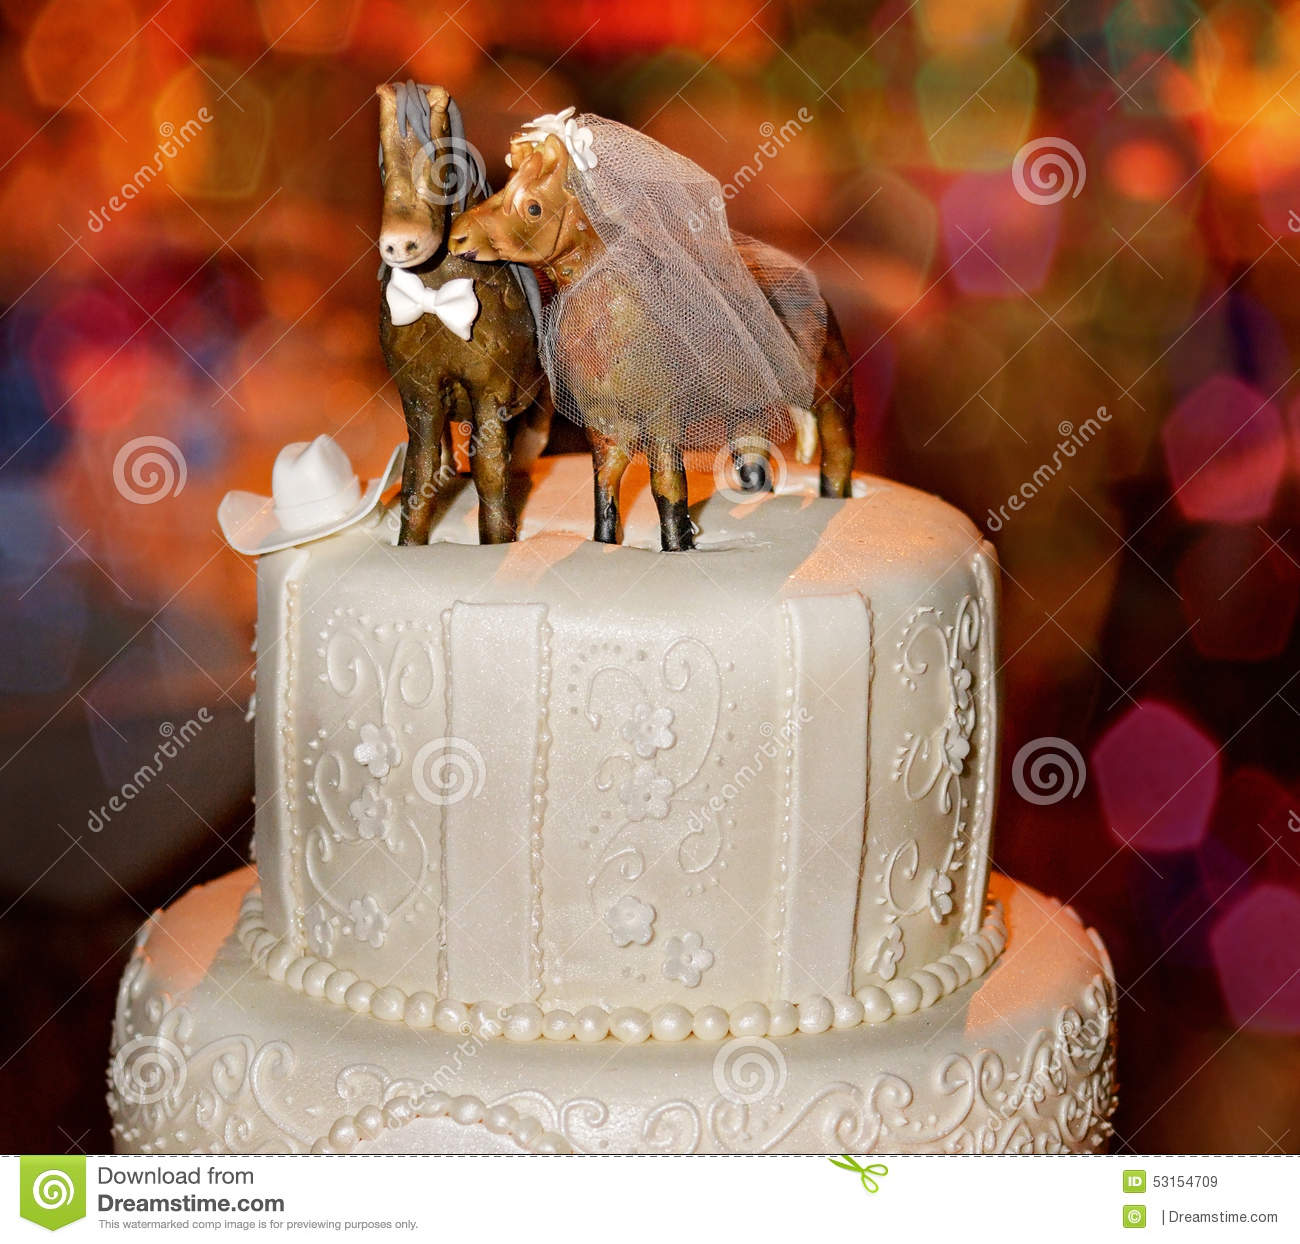 Wedding Cake Stock Photo - Image: 53154709